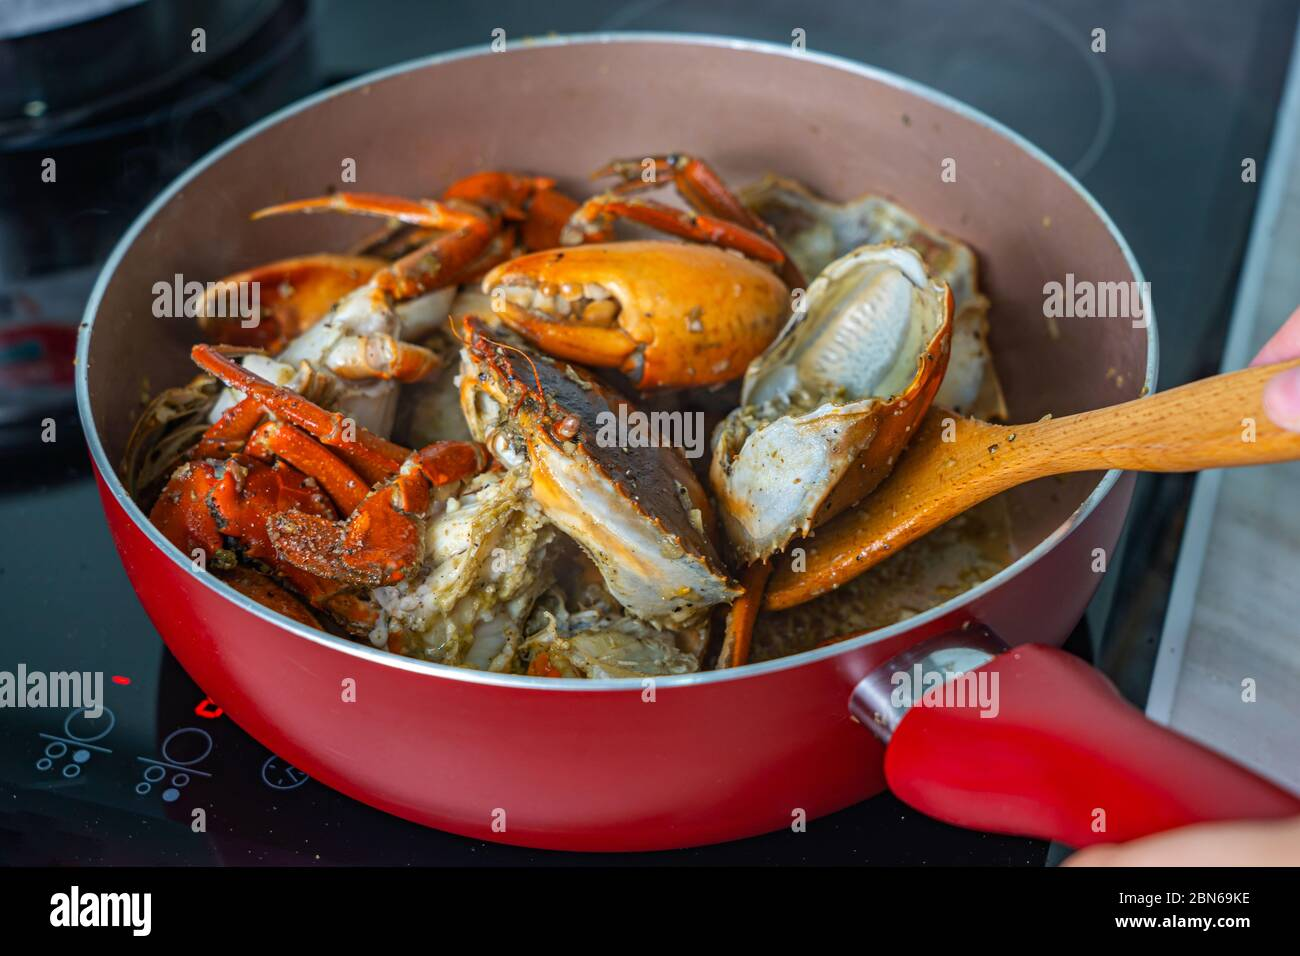 Black Pepper Crab High Resolution Stock Photography And Images Alamy